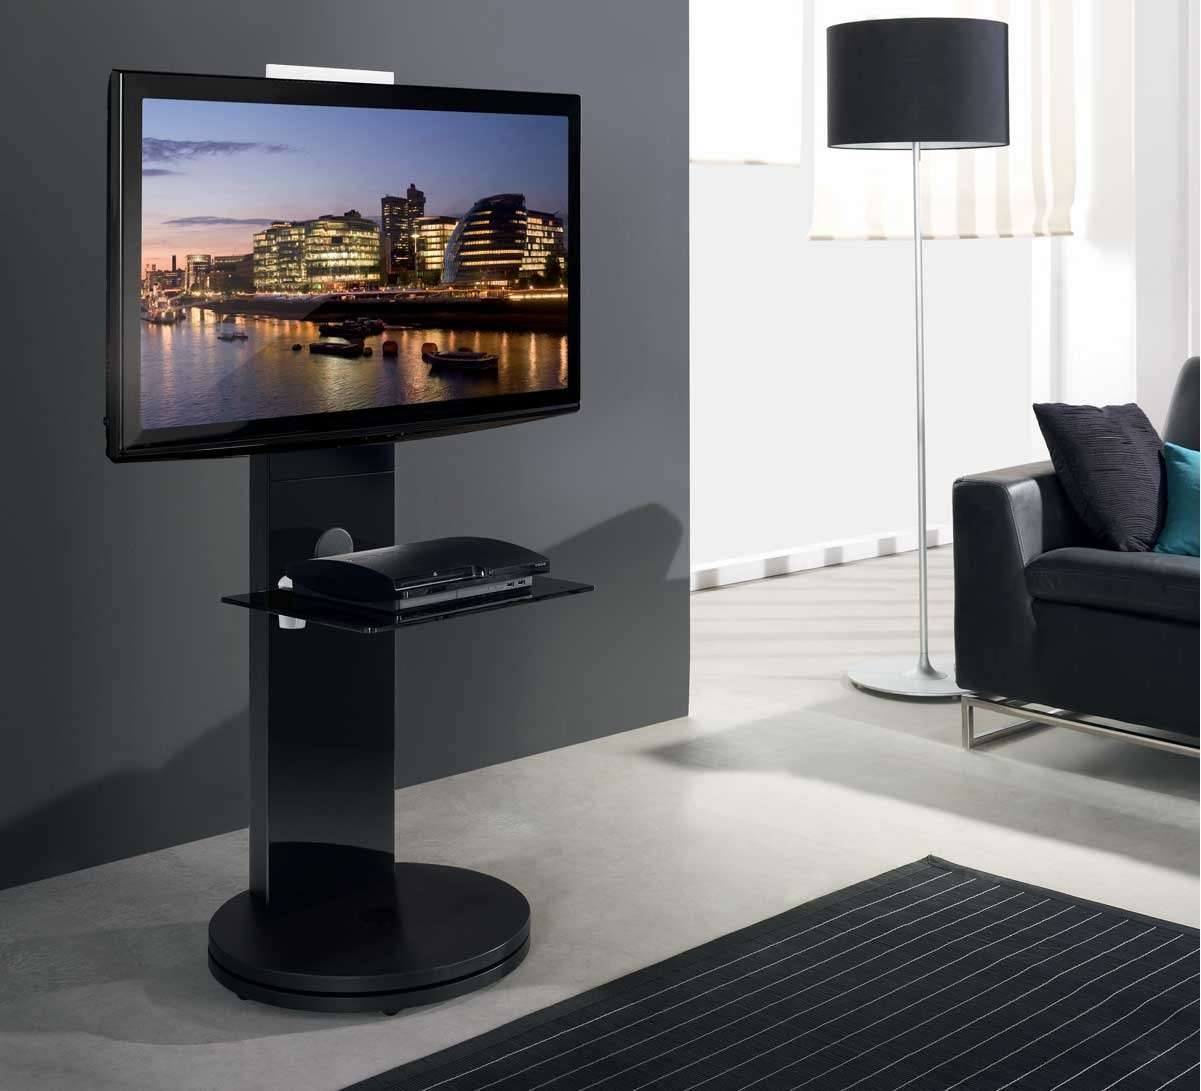 B Tech Btf811 Black Corner Cantilever Tv Stand Regarding Cantilever Glass Tv Stands (View 5 of 20)